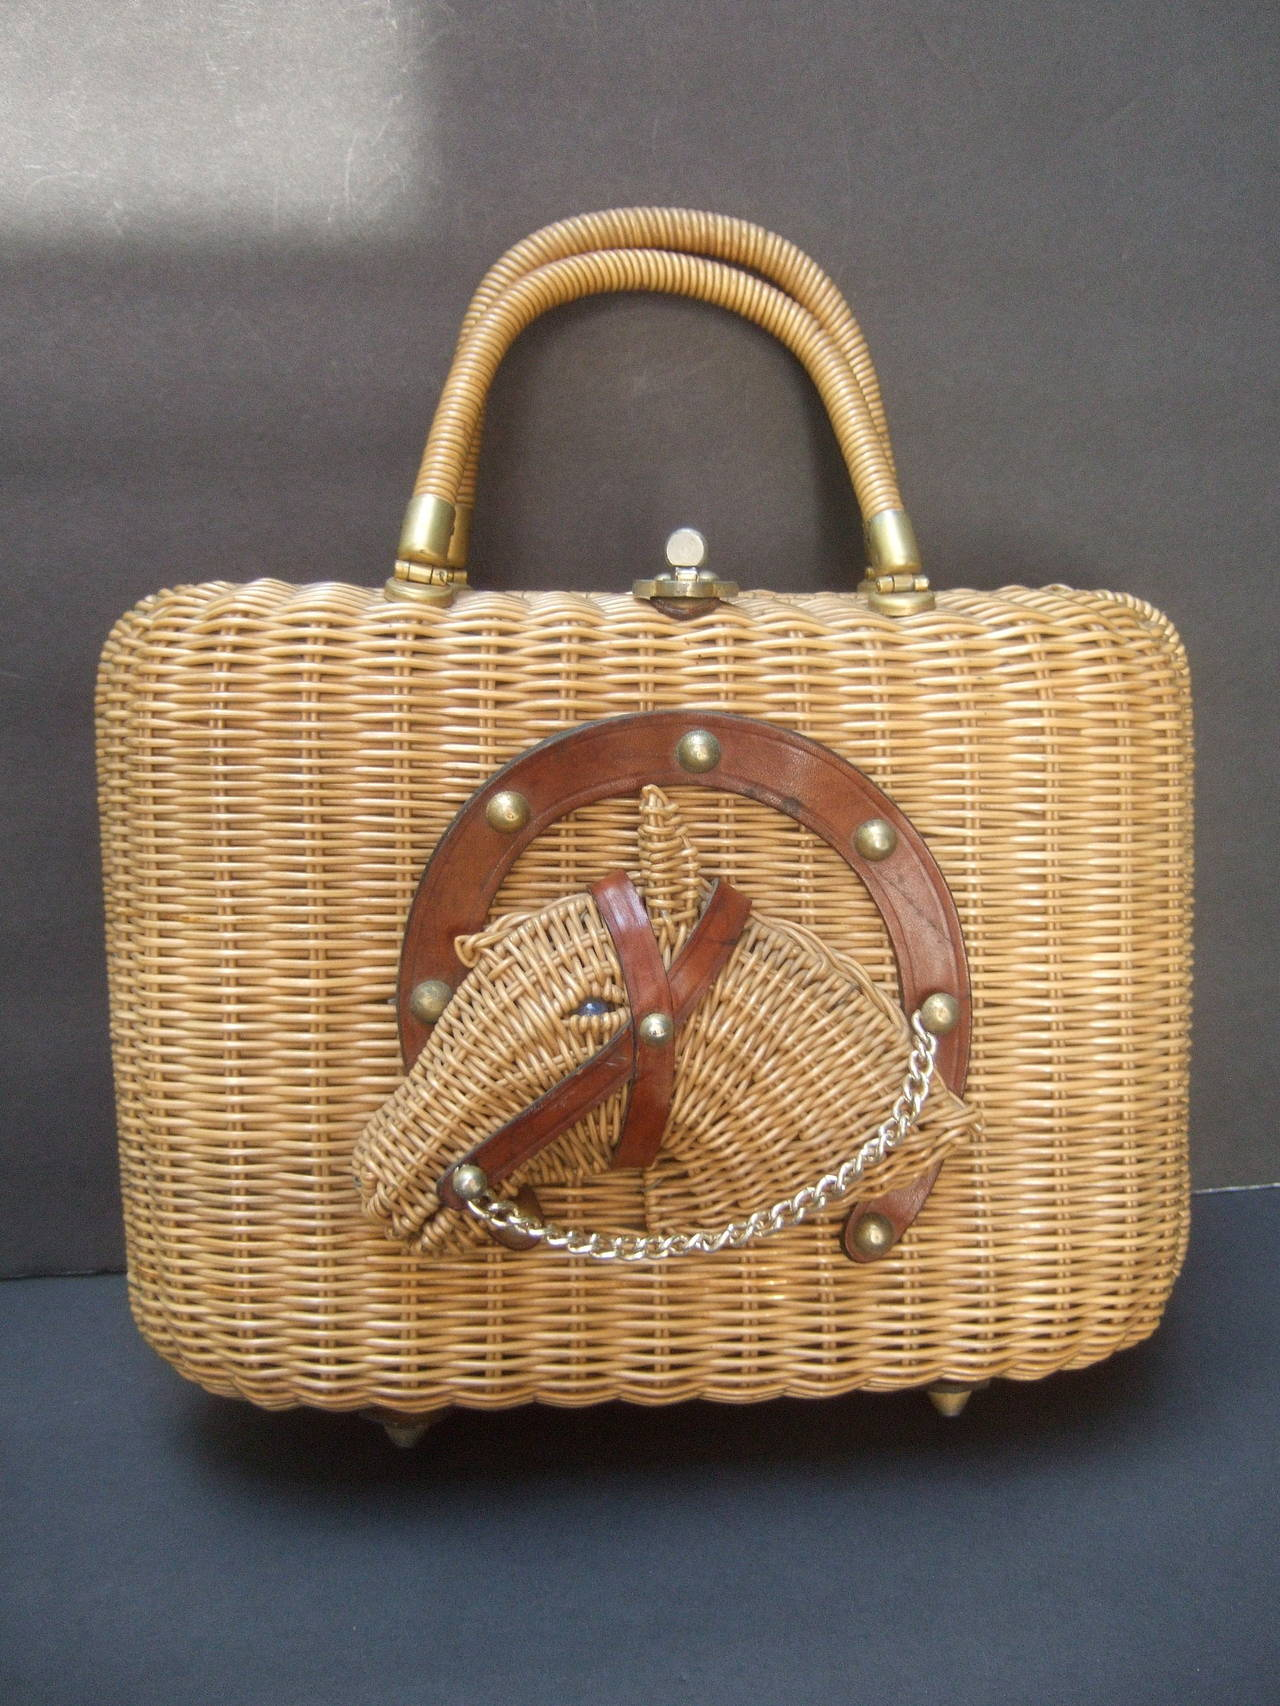 Unique Wicker Horse Head Retro Handbag C 1960 At 1stdibs